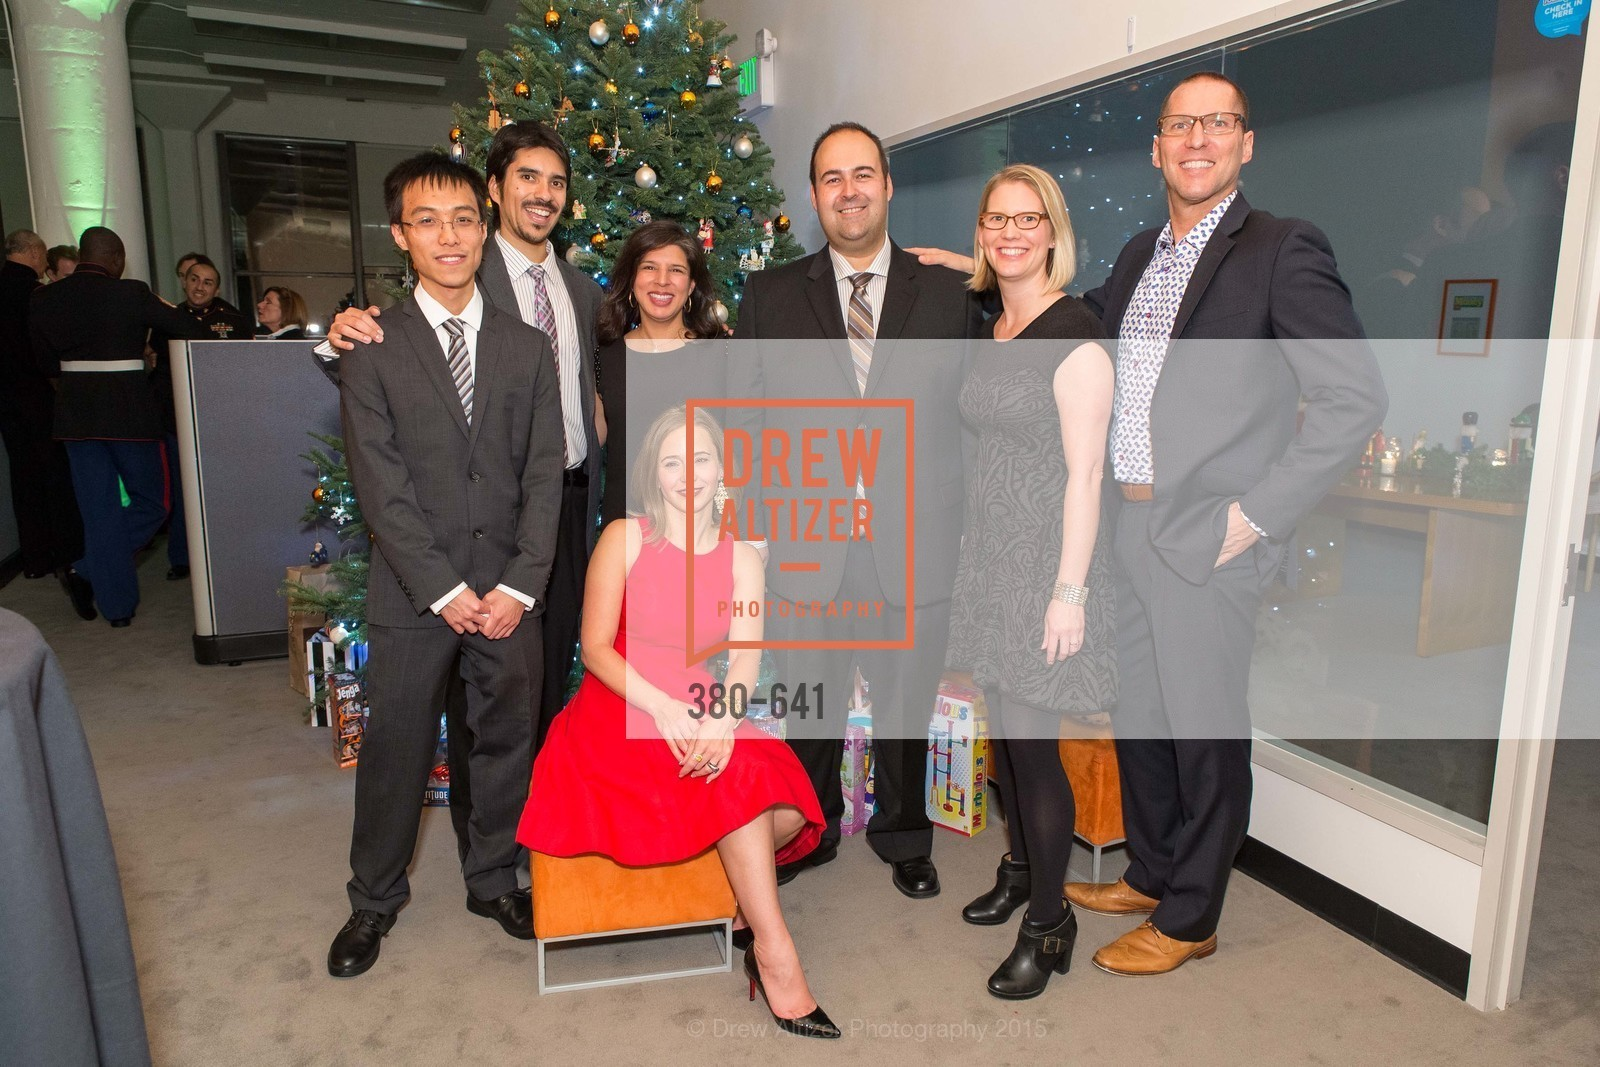 Stanley Seato, Estevan Aguayo, Mylea Charvat, Anna Bellinghausen, Devin Seto, Meredith McNeill, Eric Mason, Savonix Launch Celebration and Toys for Tots Benefit, Savonix. 300 Broadway, Suite 14, December 10th, 2015,Drew Altizer, Drew Altizer Photography, full-service agency, private events, San Francisco photographer, photographer california